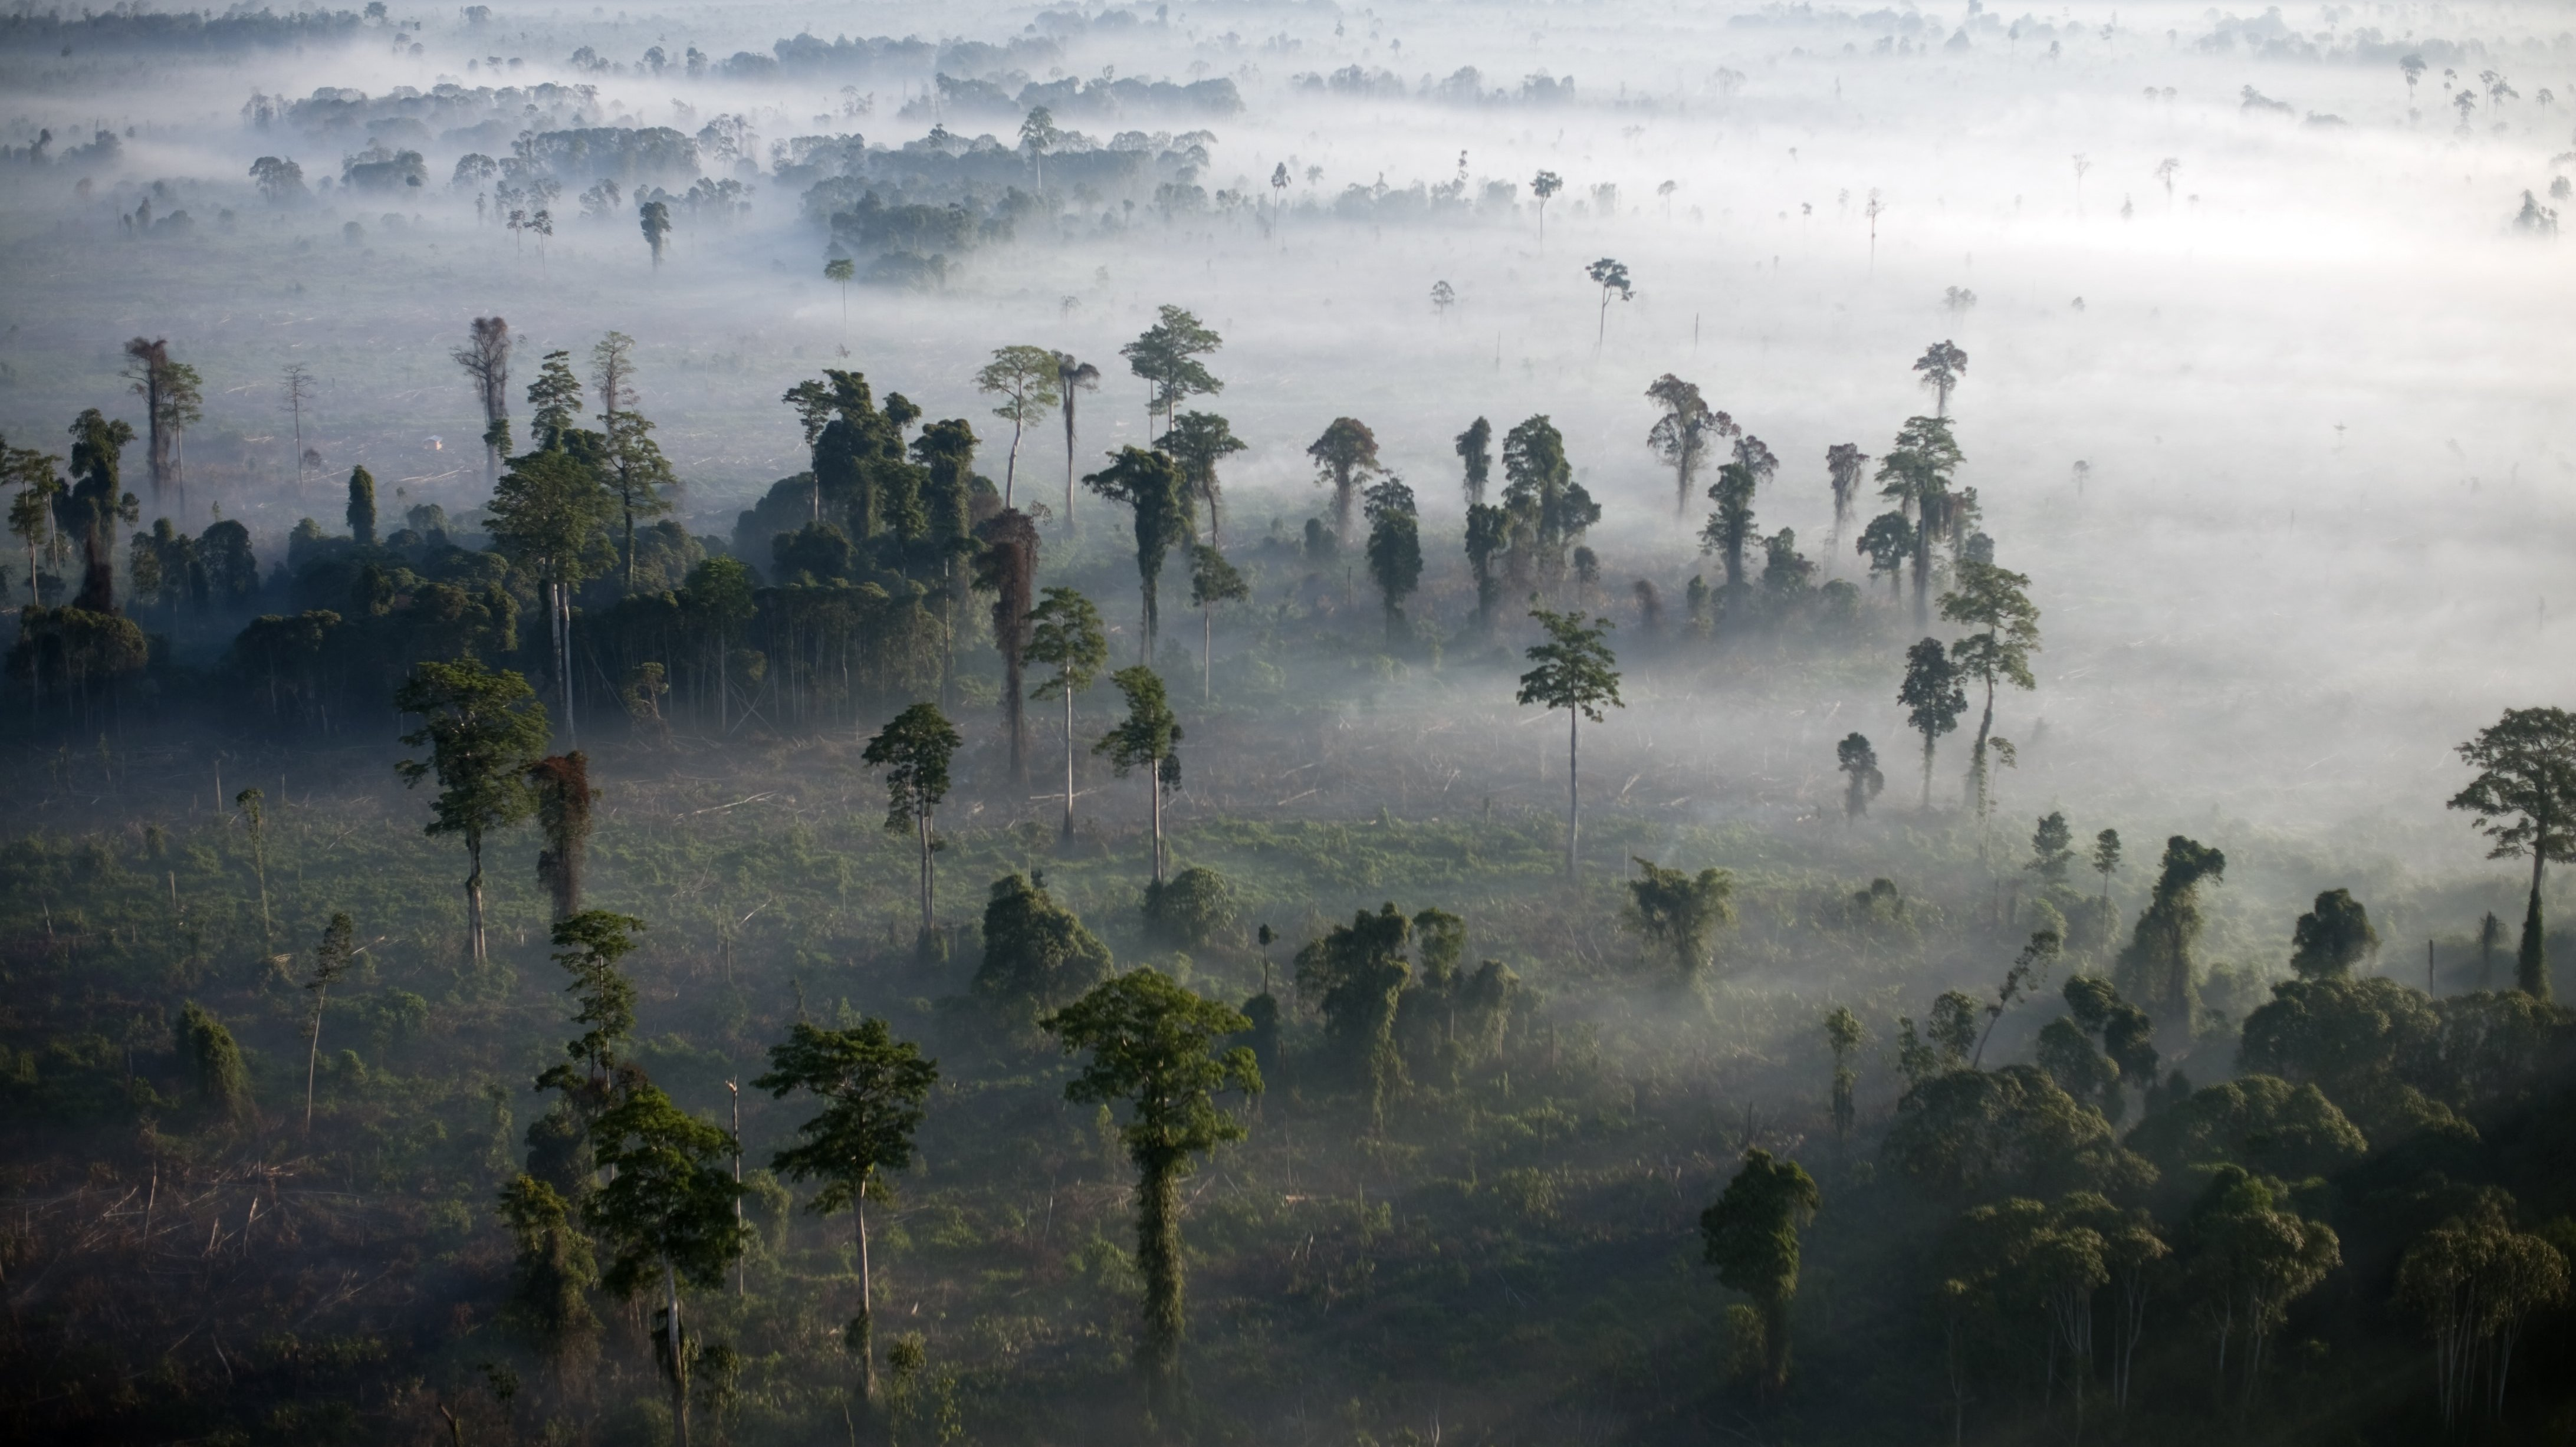 Endangered Forests and Orangutans in Tripa Indonesia